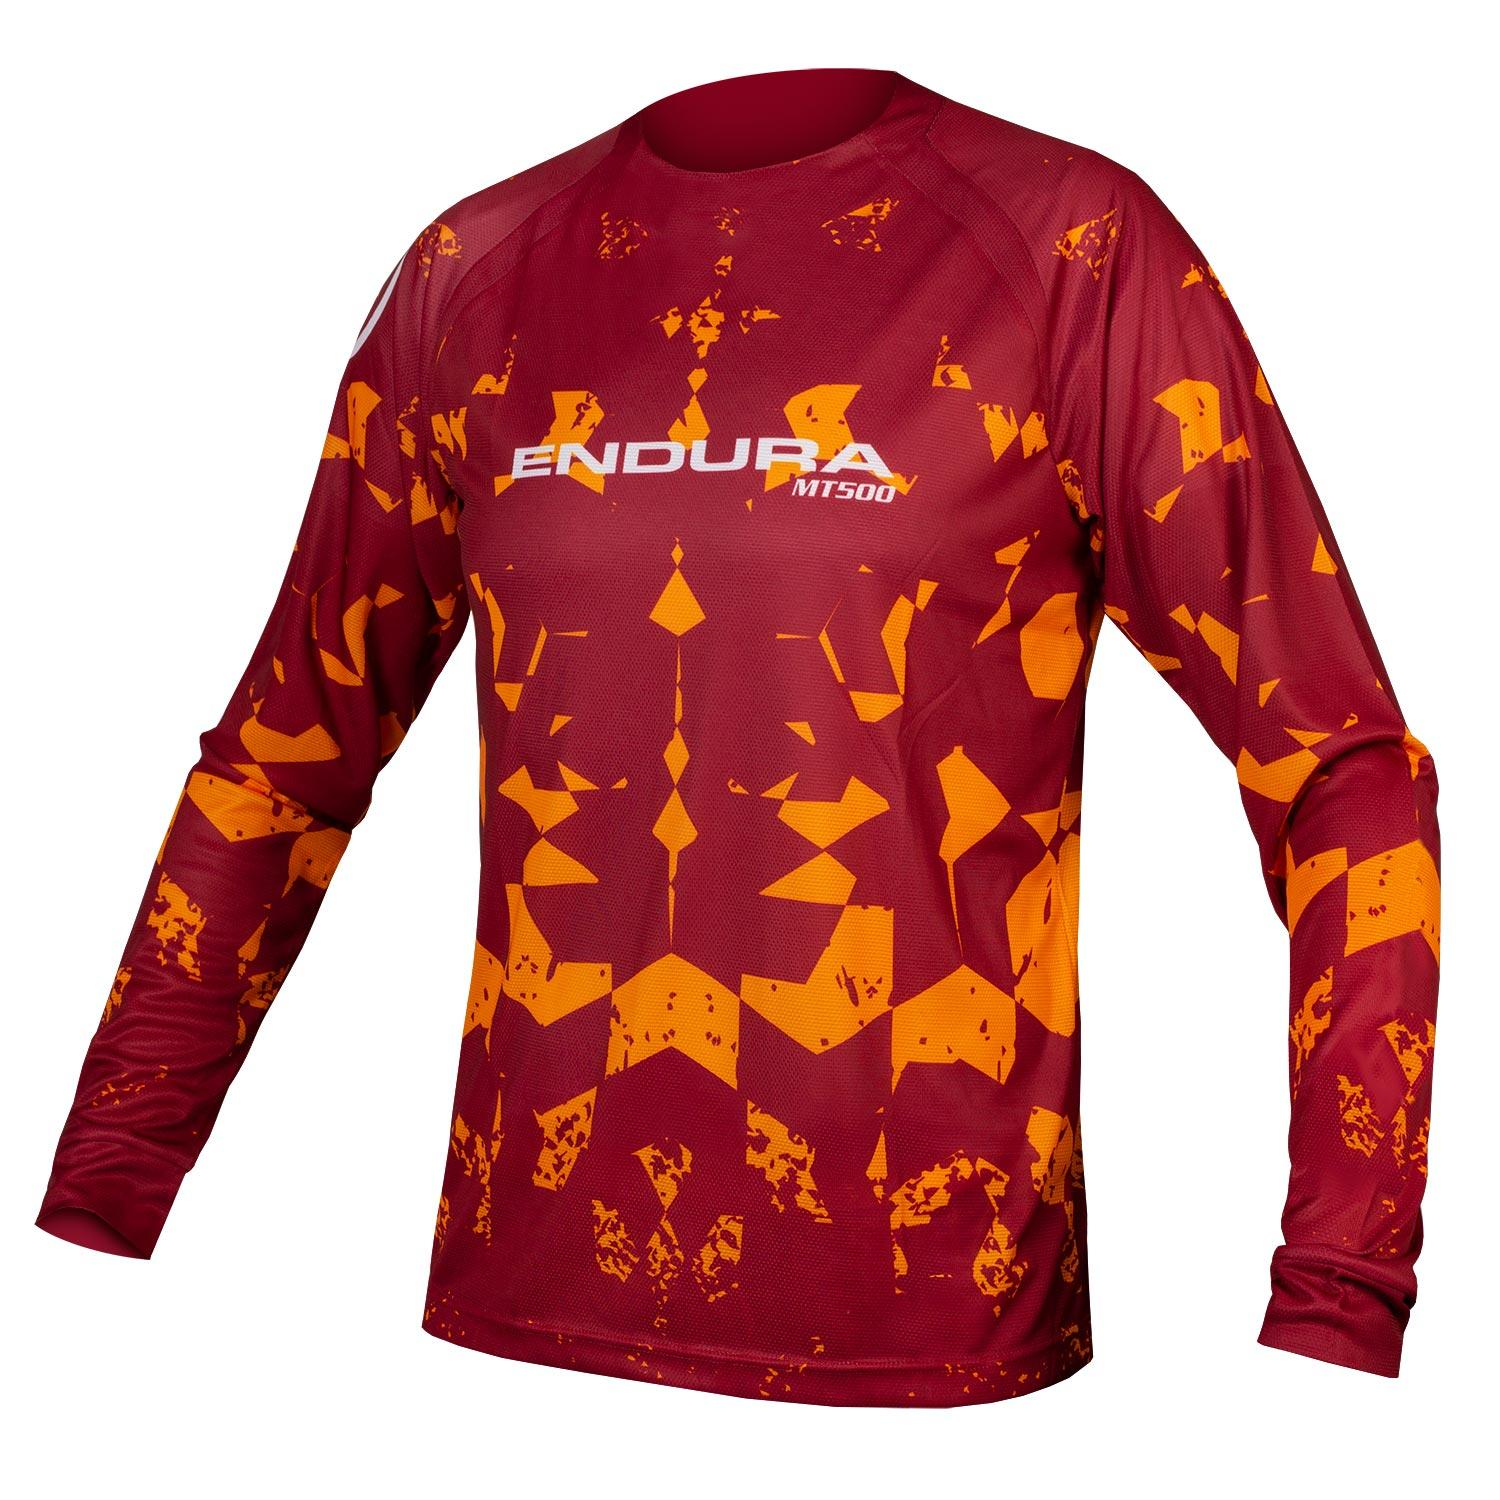 Endura Wielershirt MTB Lange Mouwen voor Heren Rood Oranje / MT500 Kali L/S T LTD Rust Red